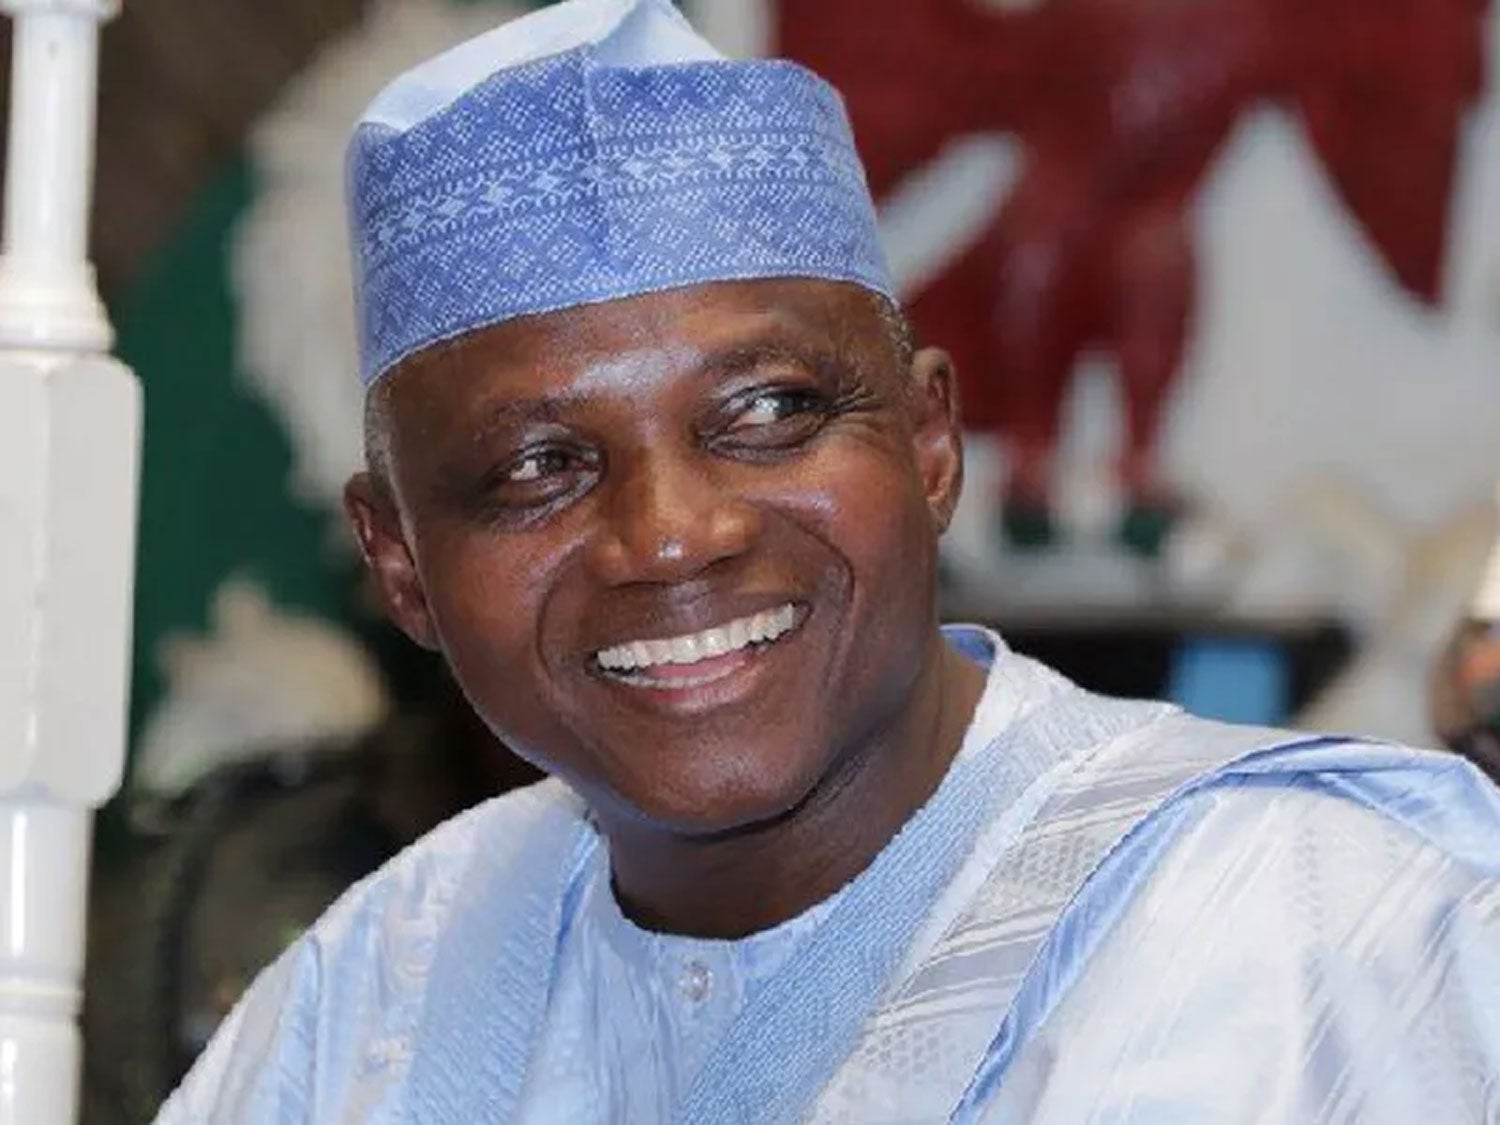 President Spokesman, Garba Shehu Under Fire For Hugging a Woman